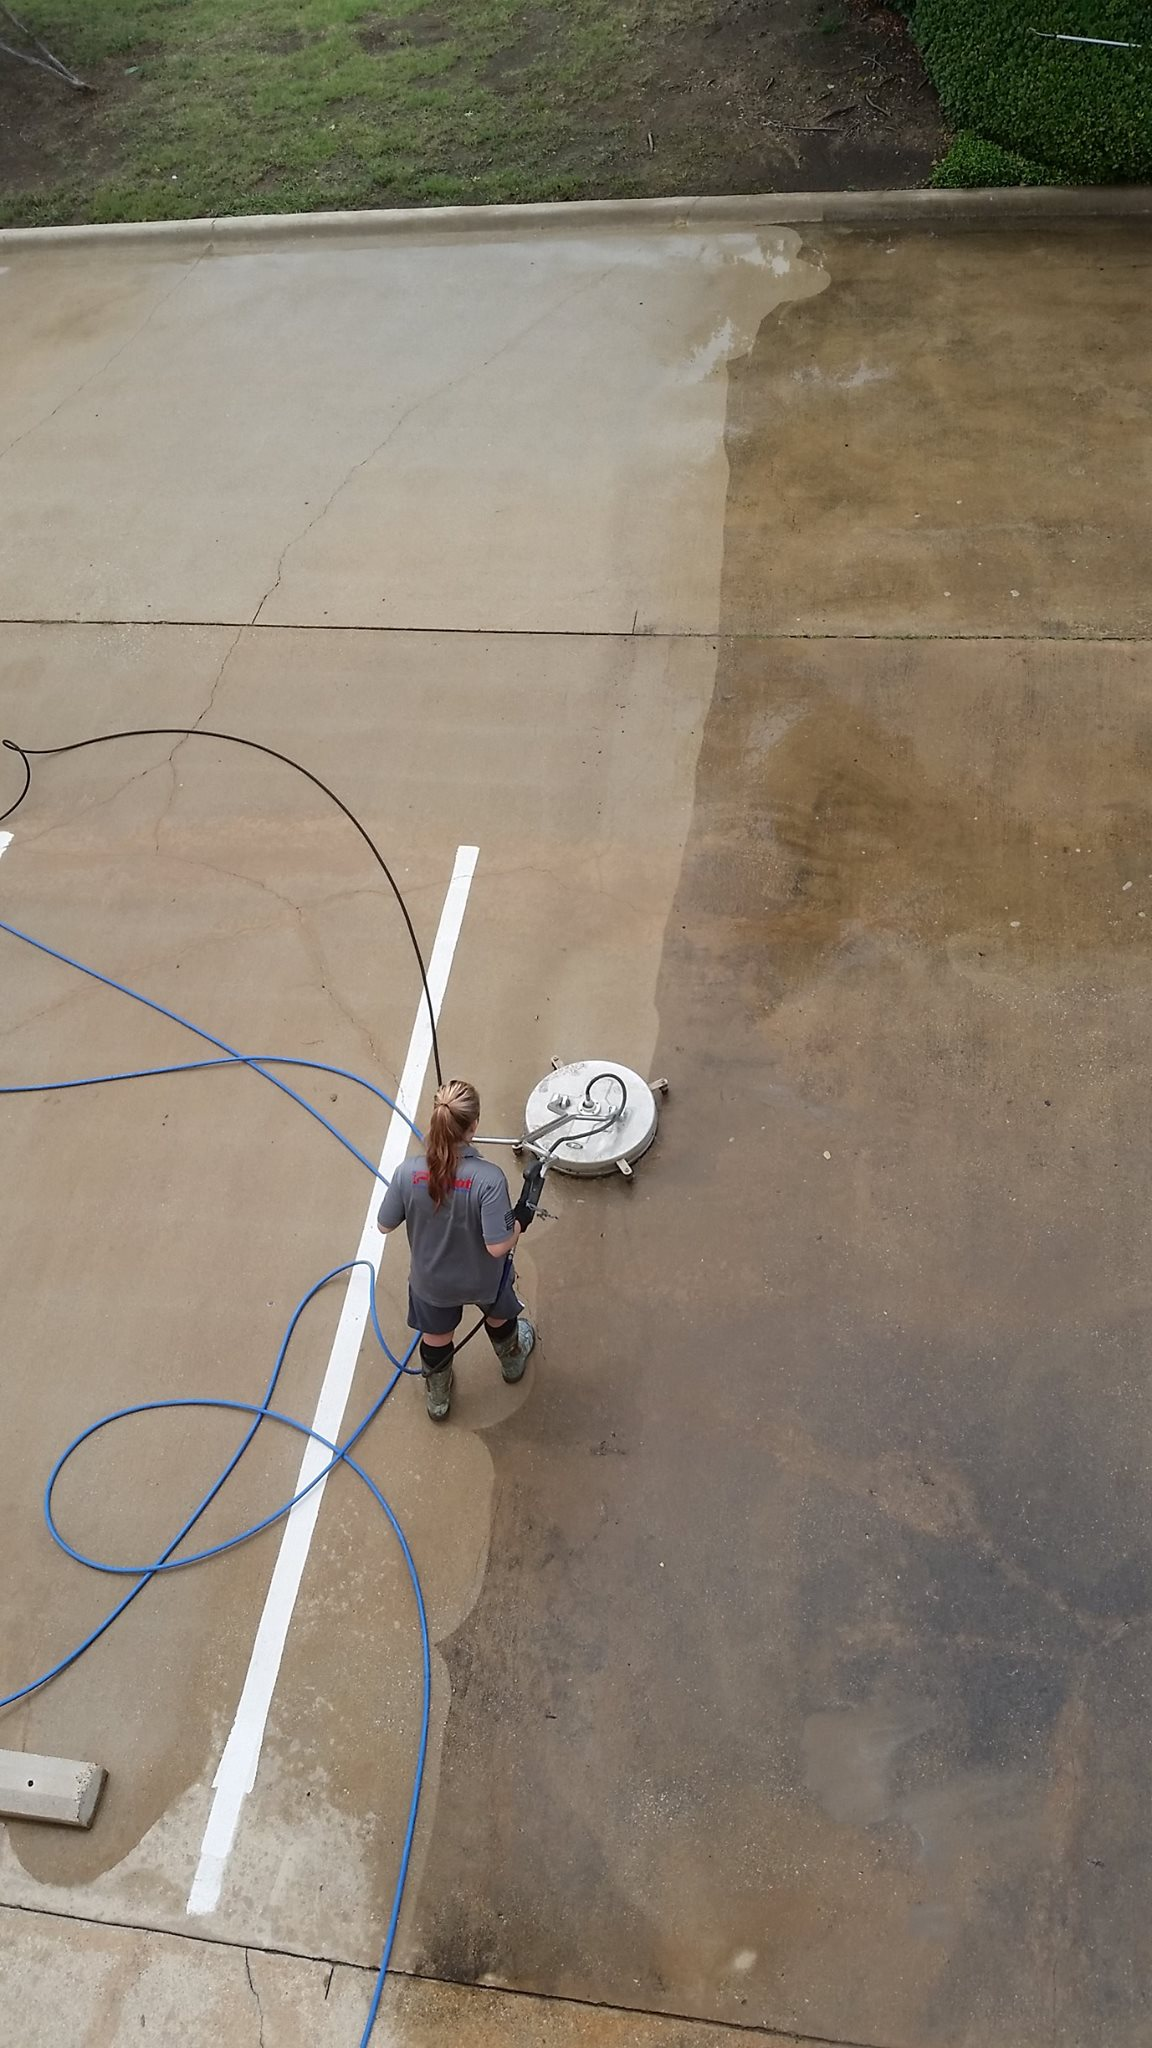 3 Benefits Of Hiring A Professional To Do Your Driveway And Sidewalk Pressure Washing